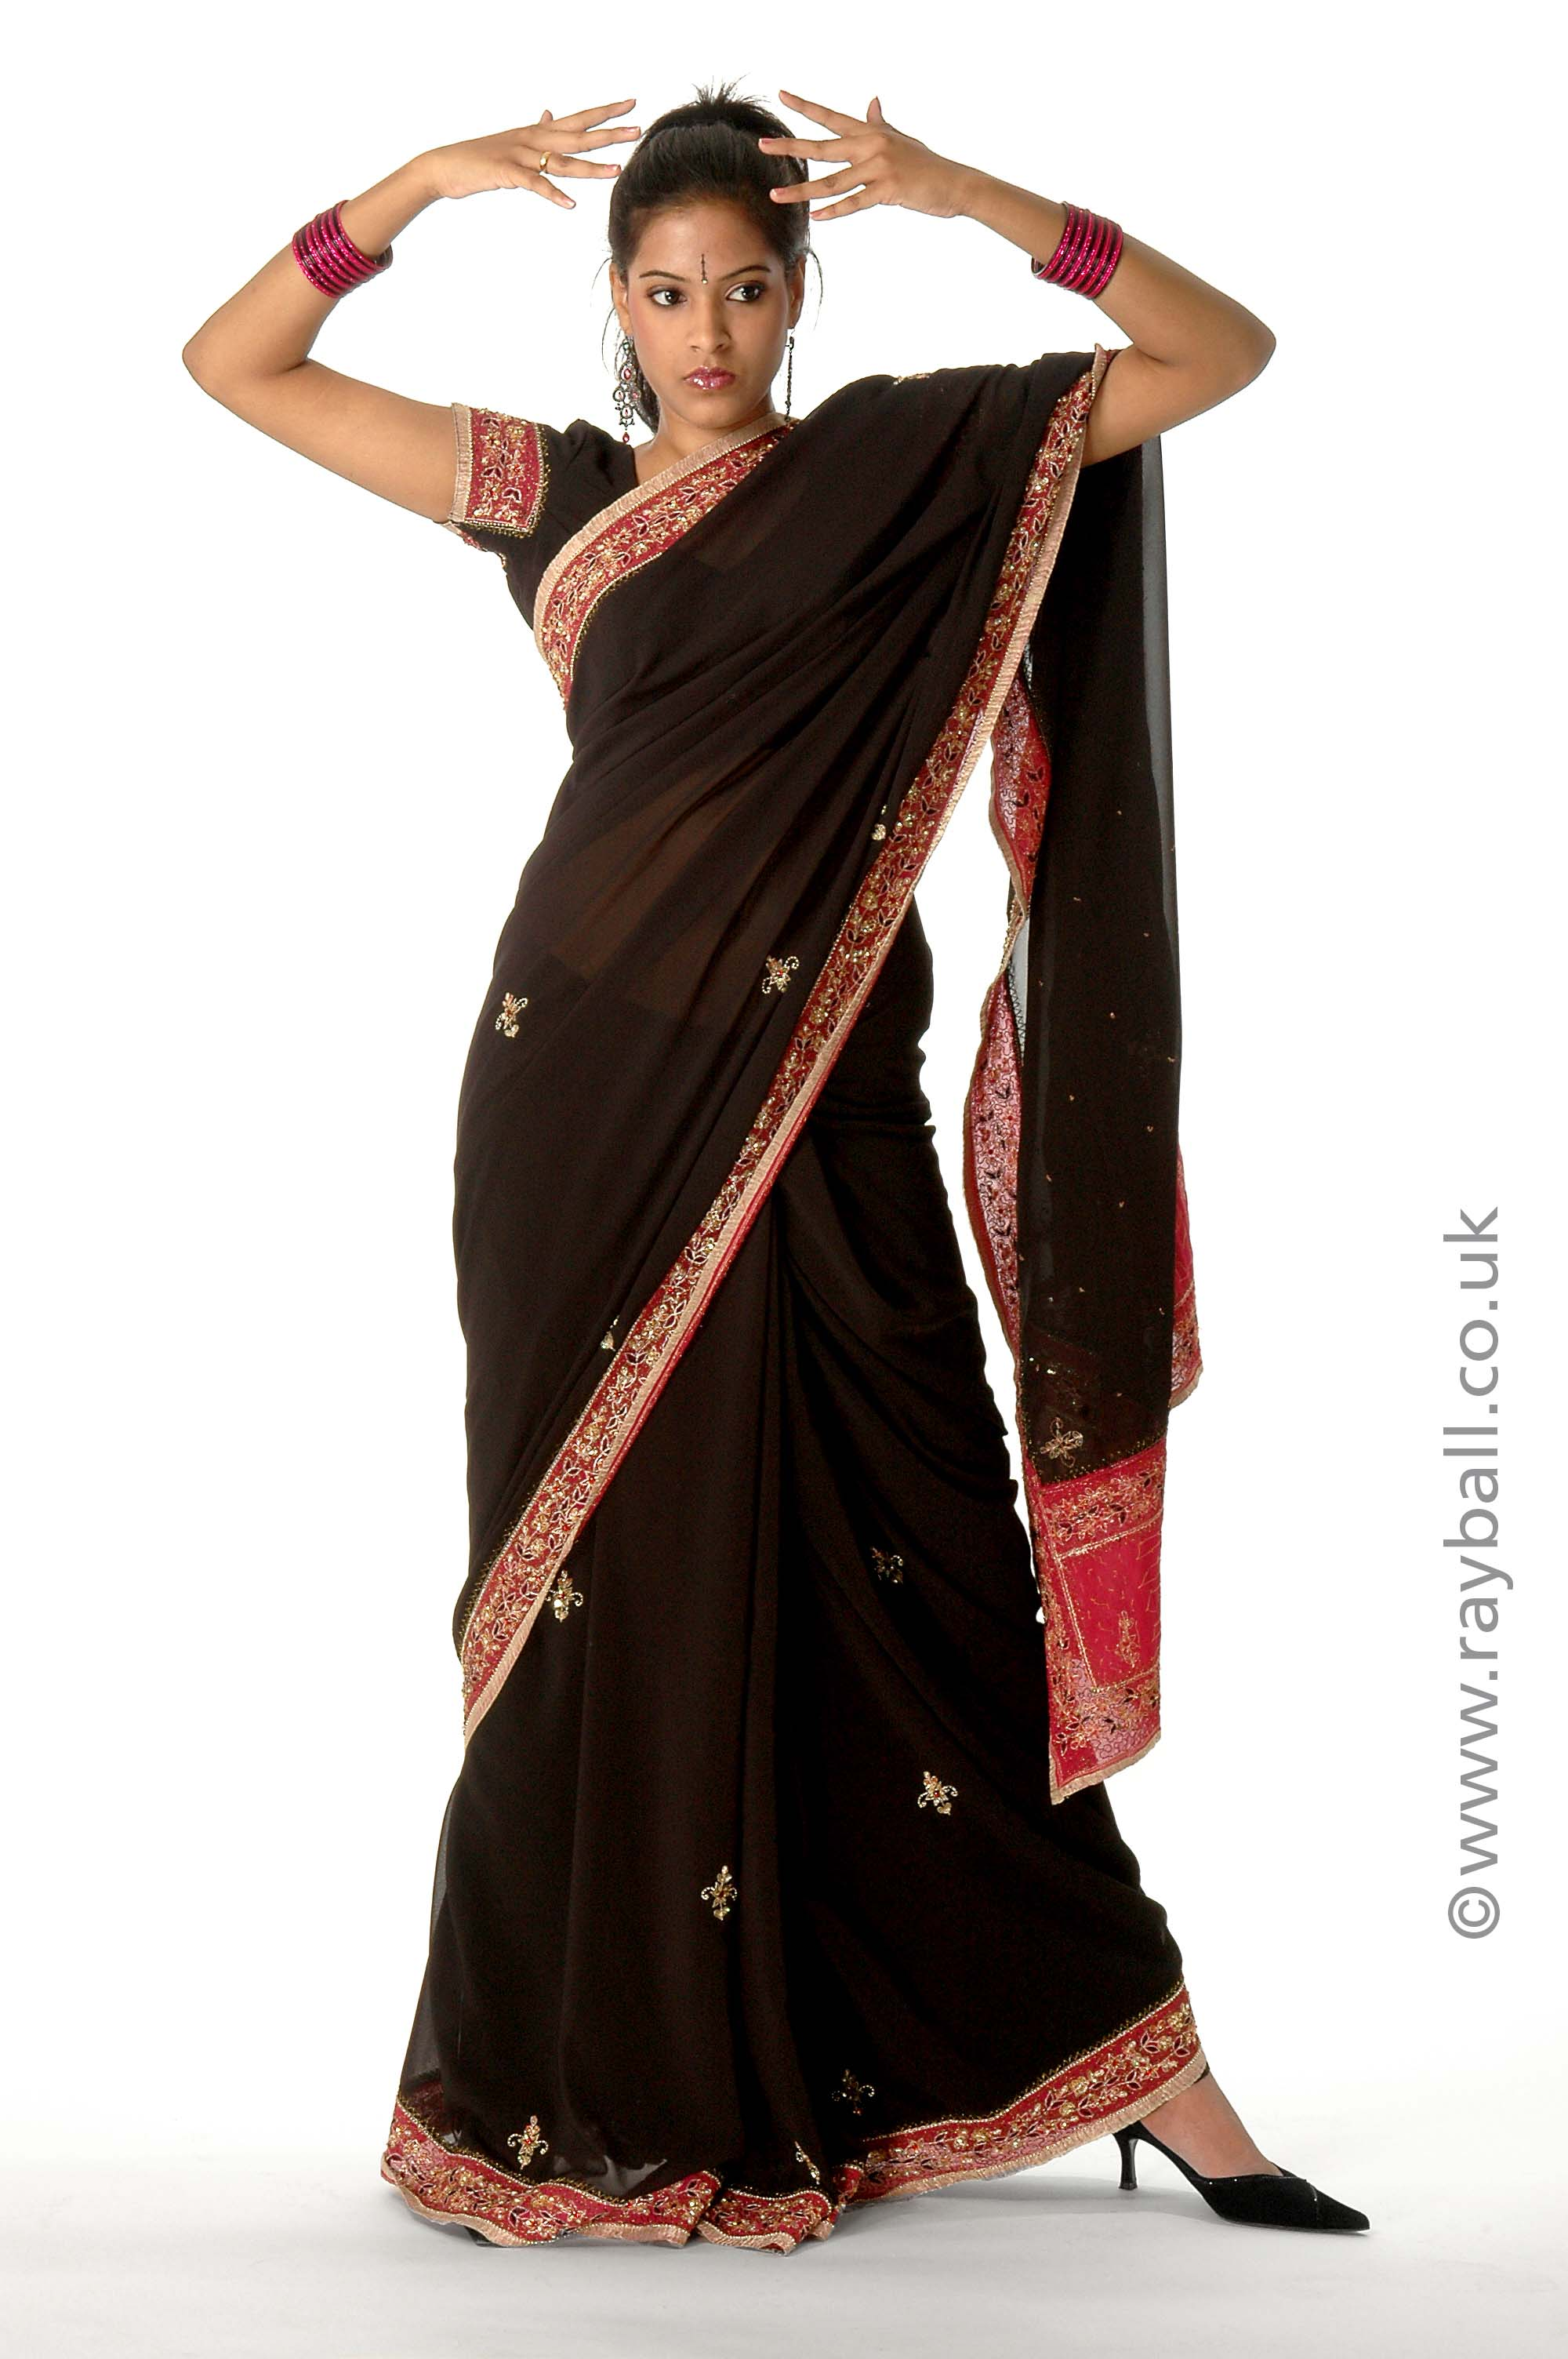 Tadworth model in sari at Epsom Photography Studio KT18.